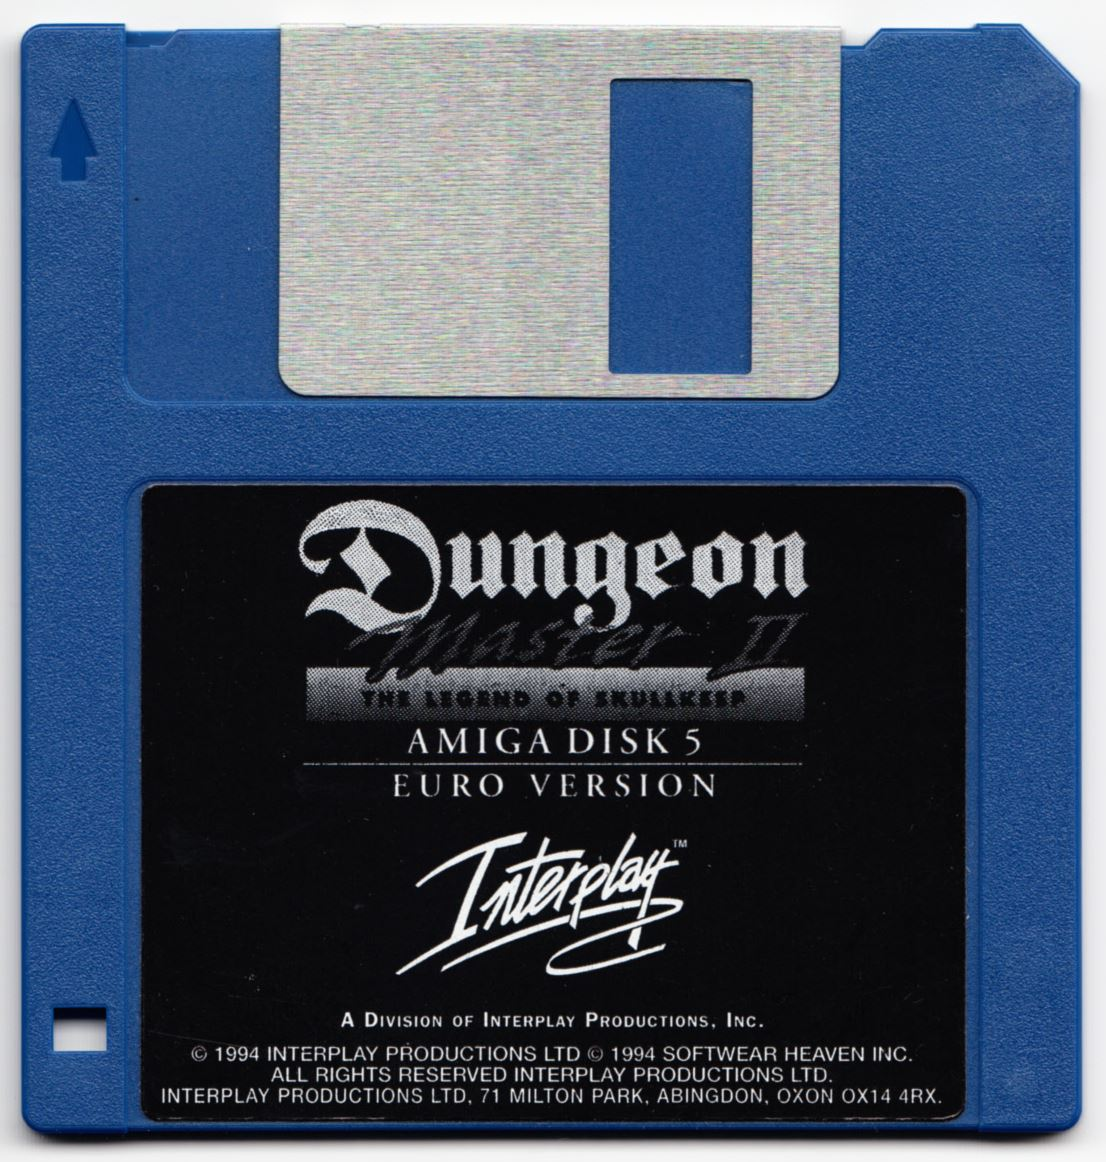 Game - Dungeon Master II - UK - Amiga - Disk 5 - Front - Scan